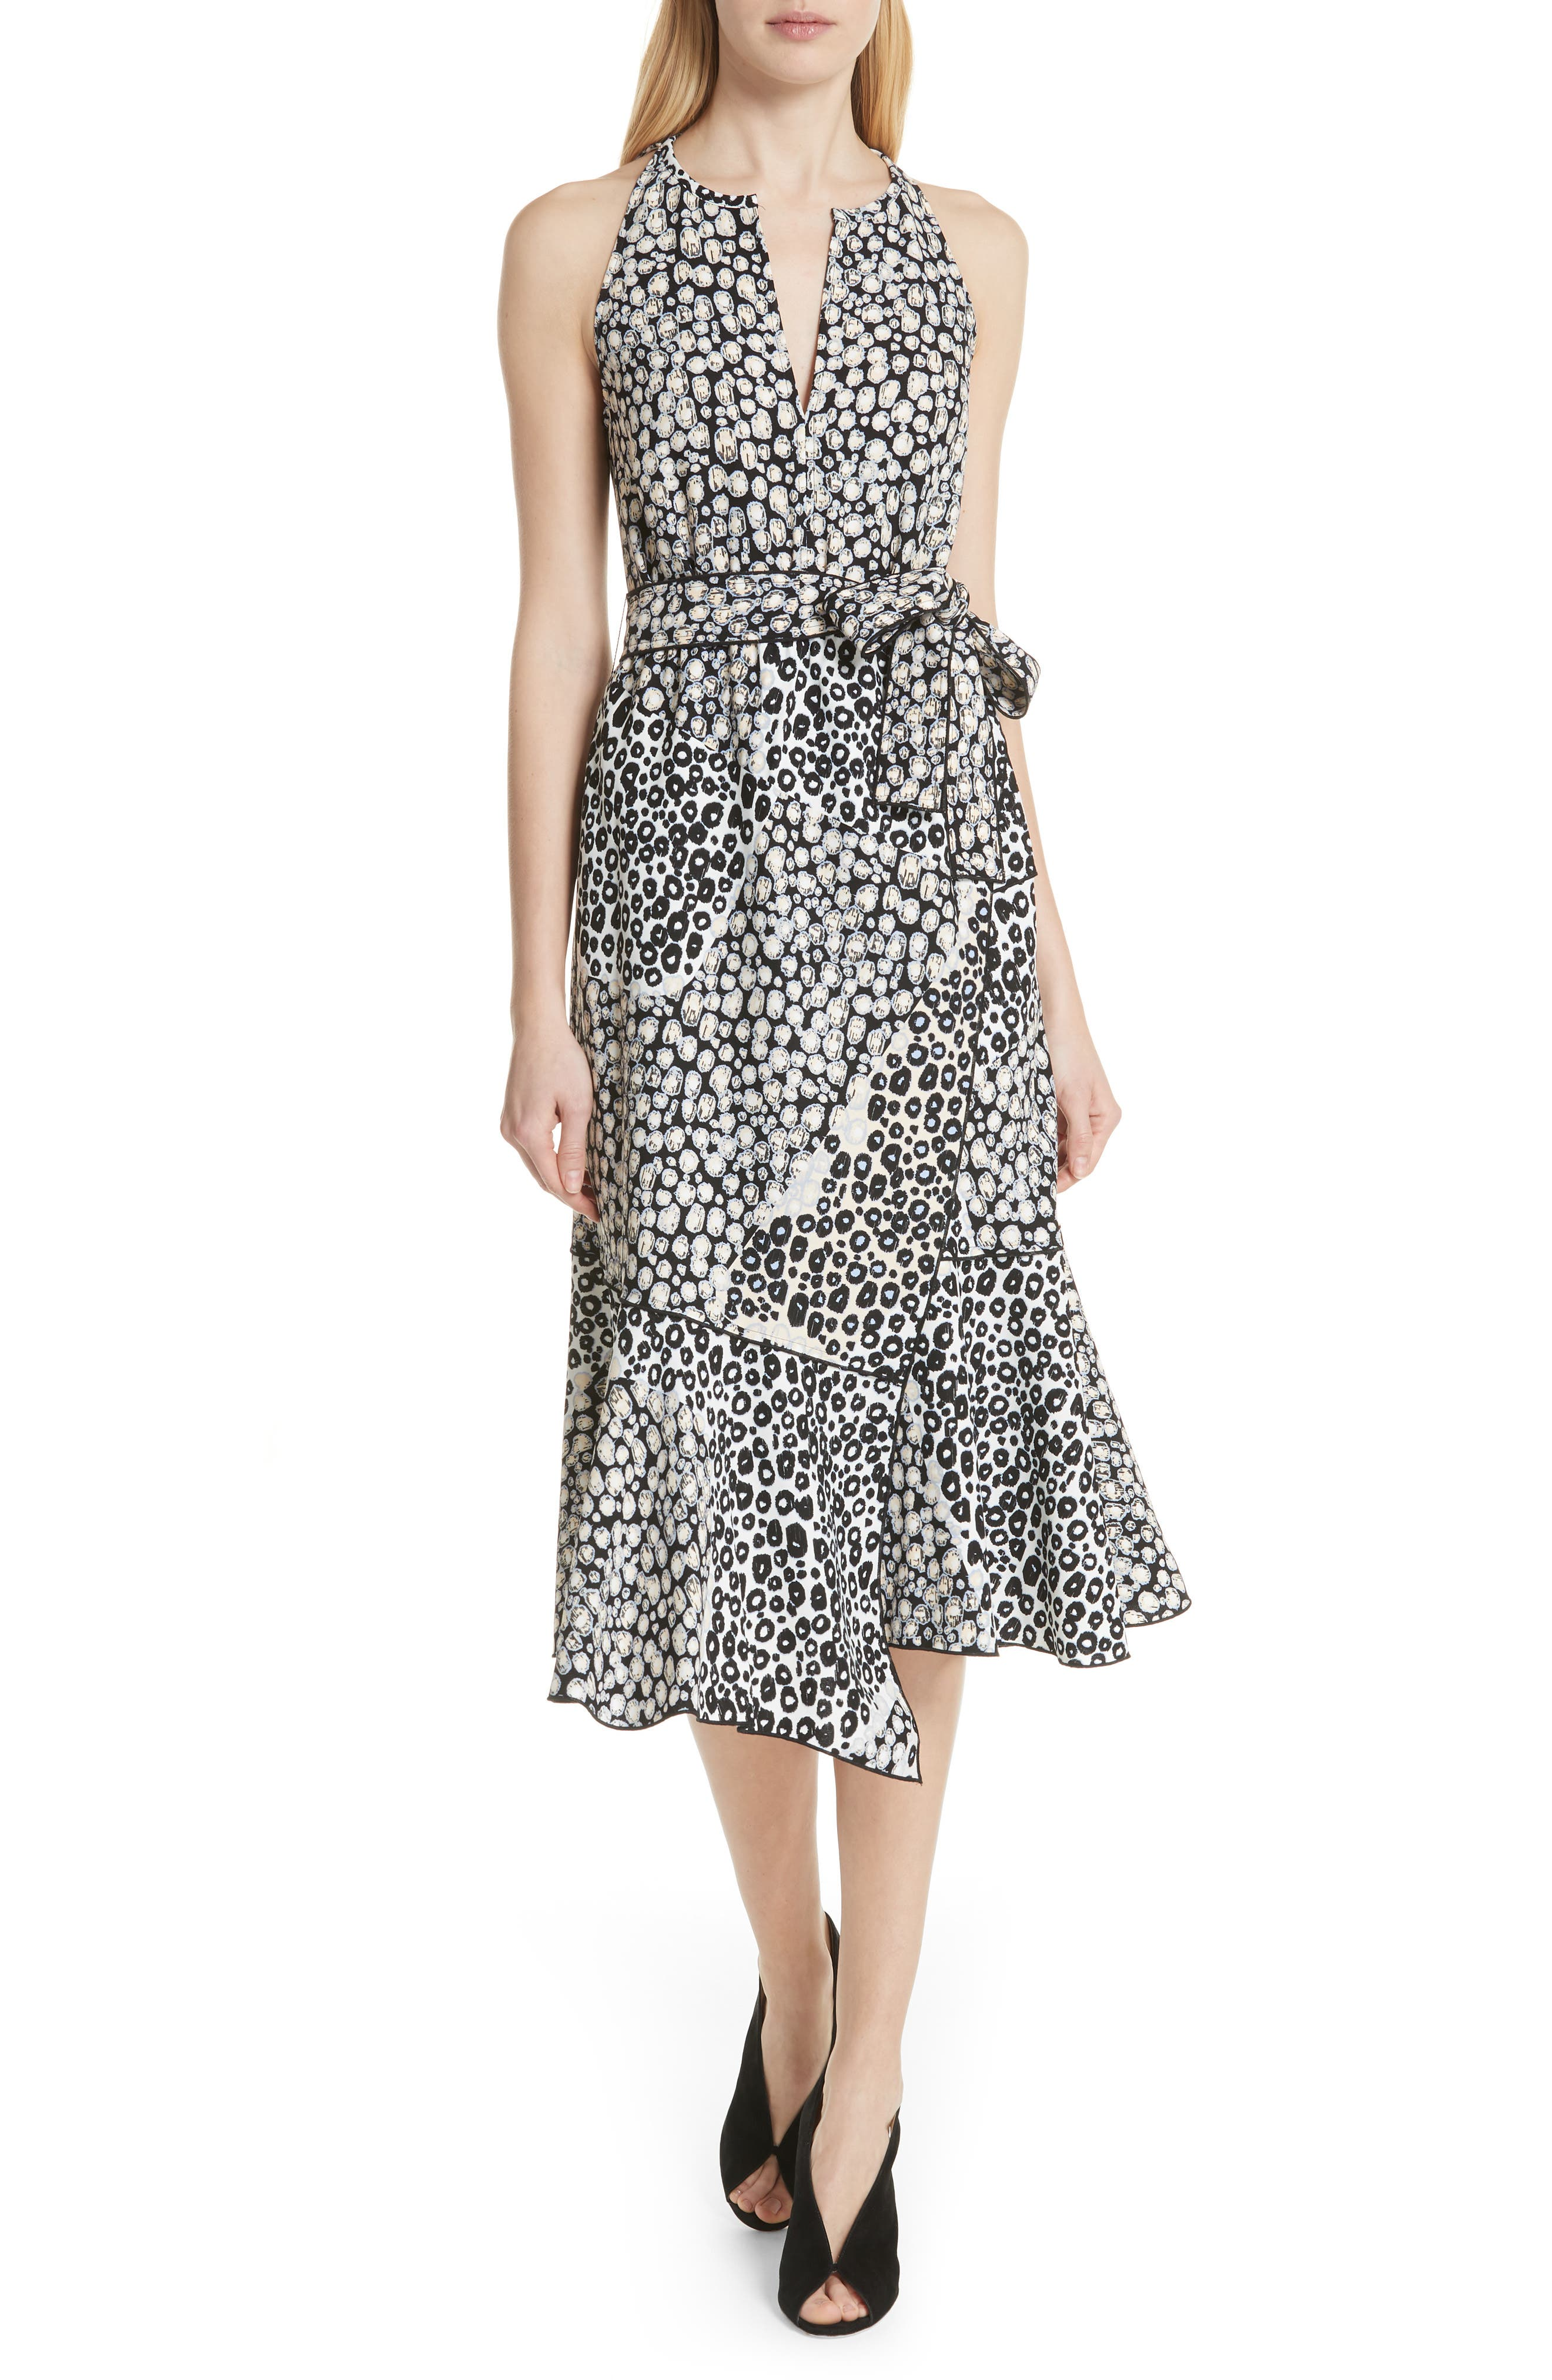 Derek Lam 10 Crosby Asymmetrical Faux Wrap Dress